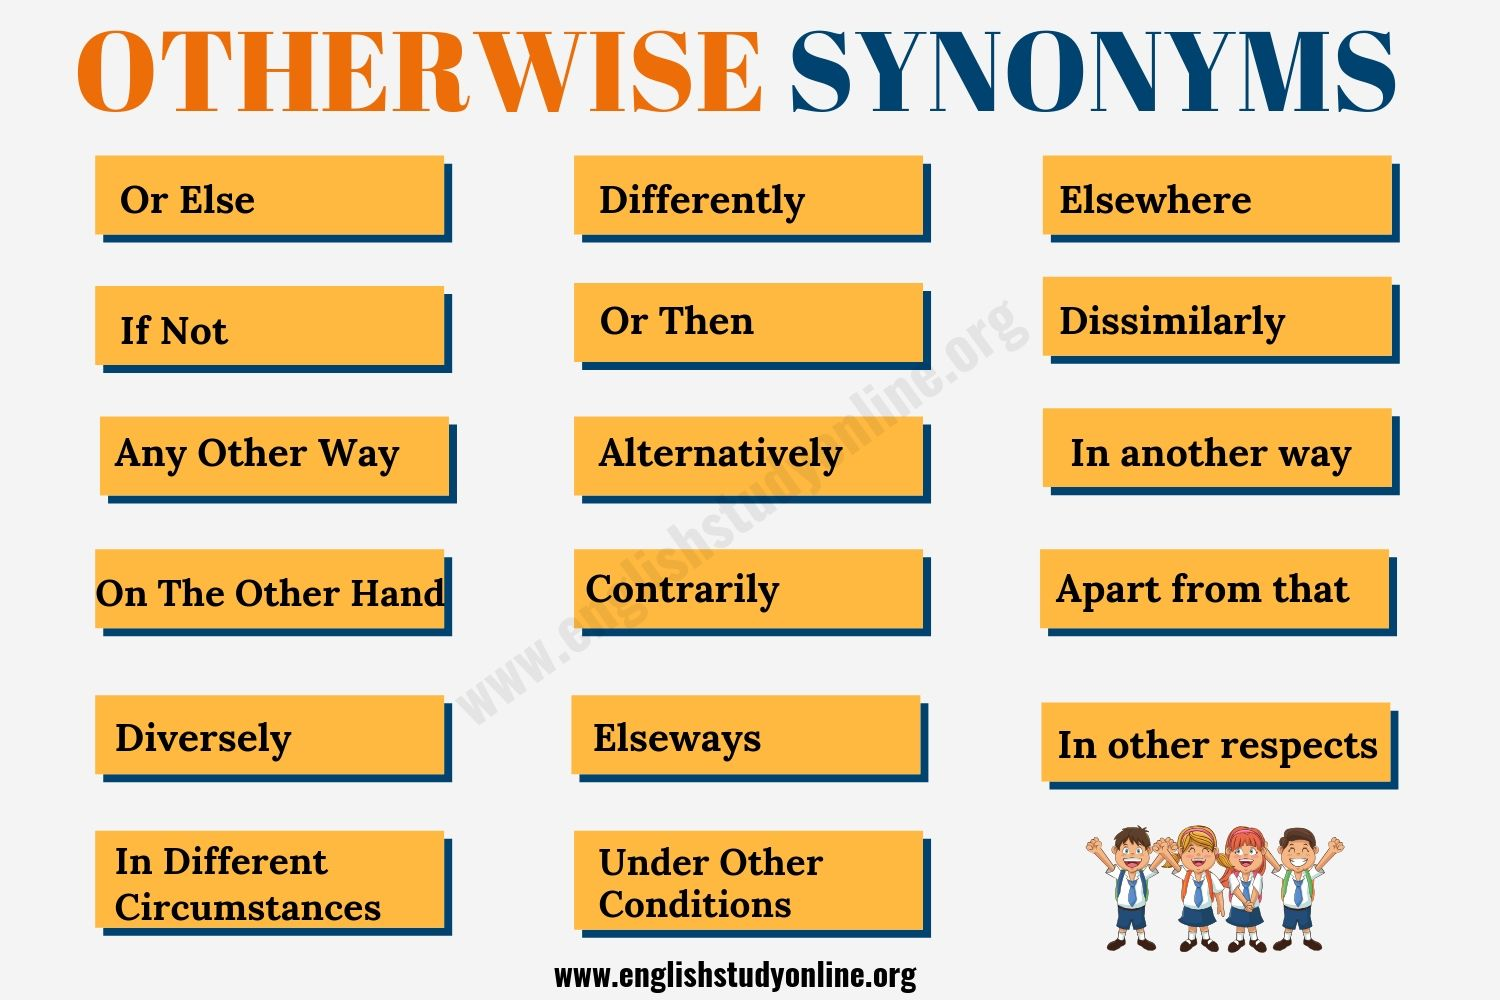 OTHERWISE Synonym | 15+ Useful Otherwise Synonyms in English ...